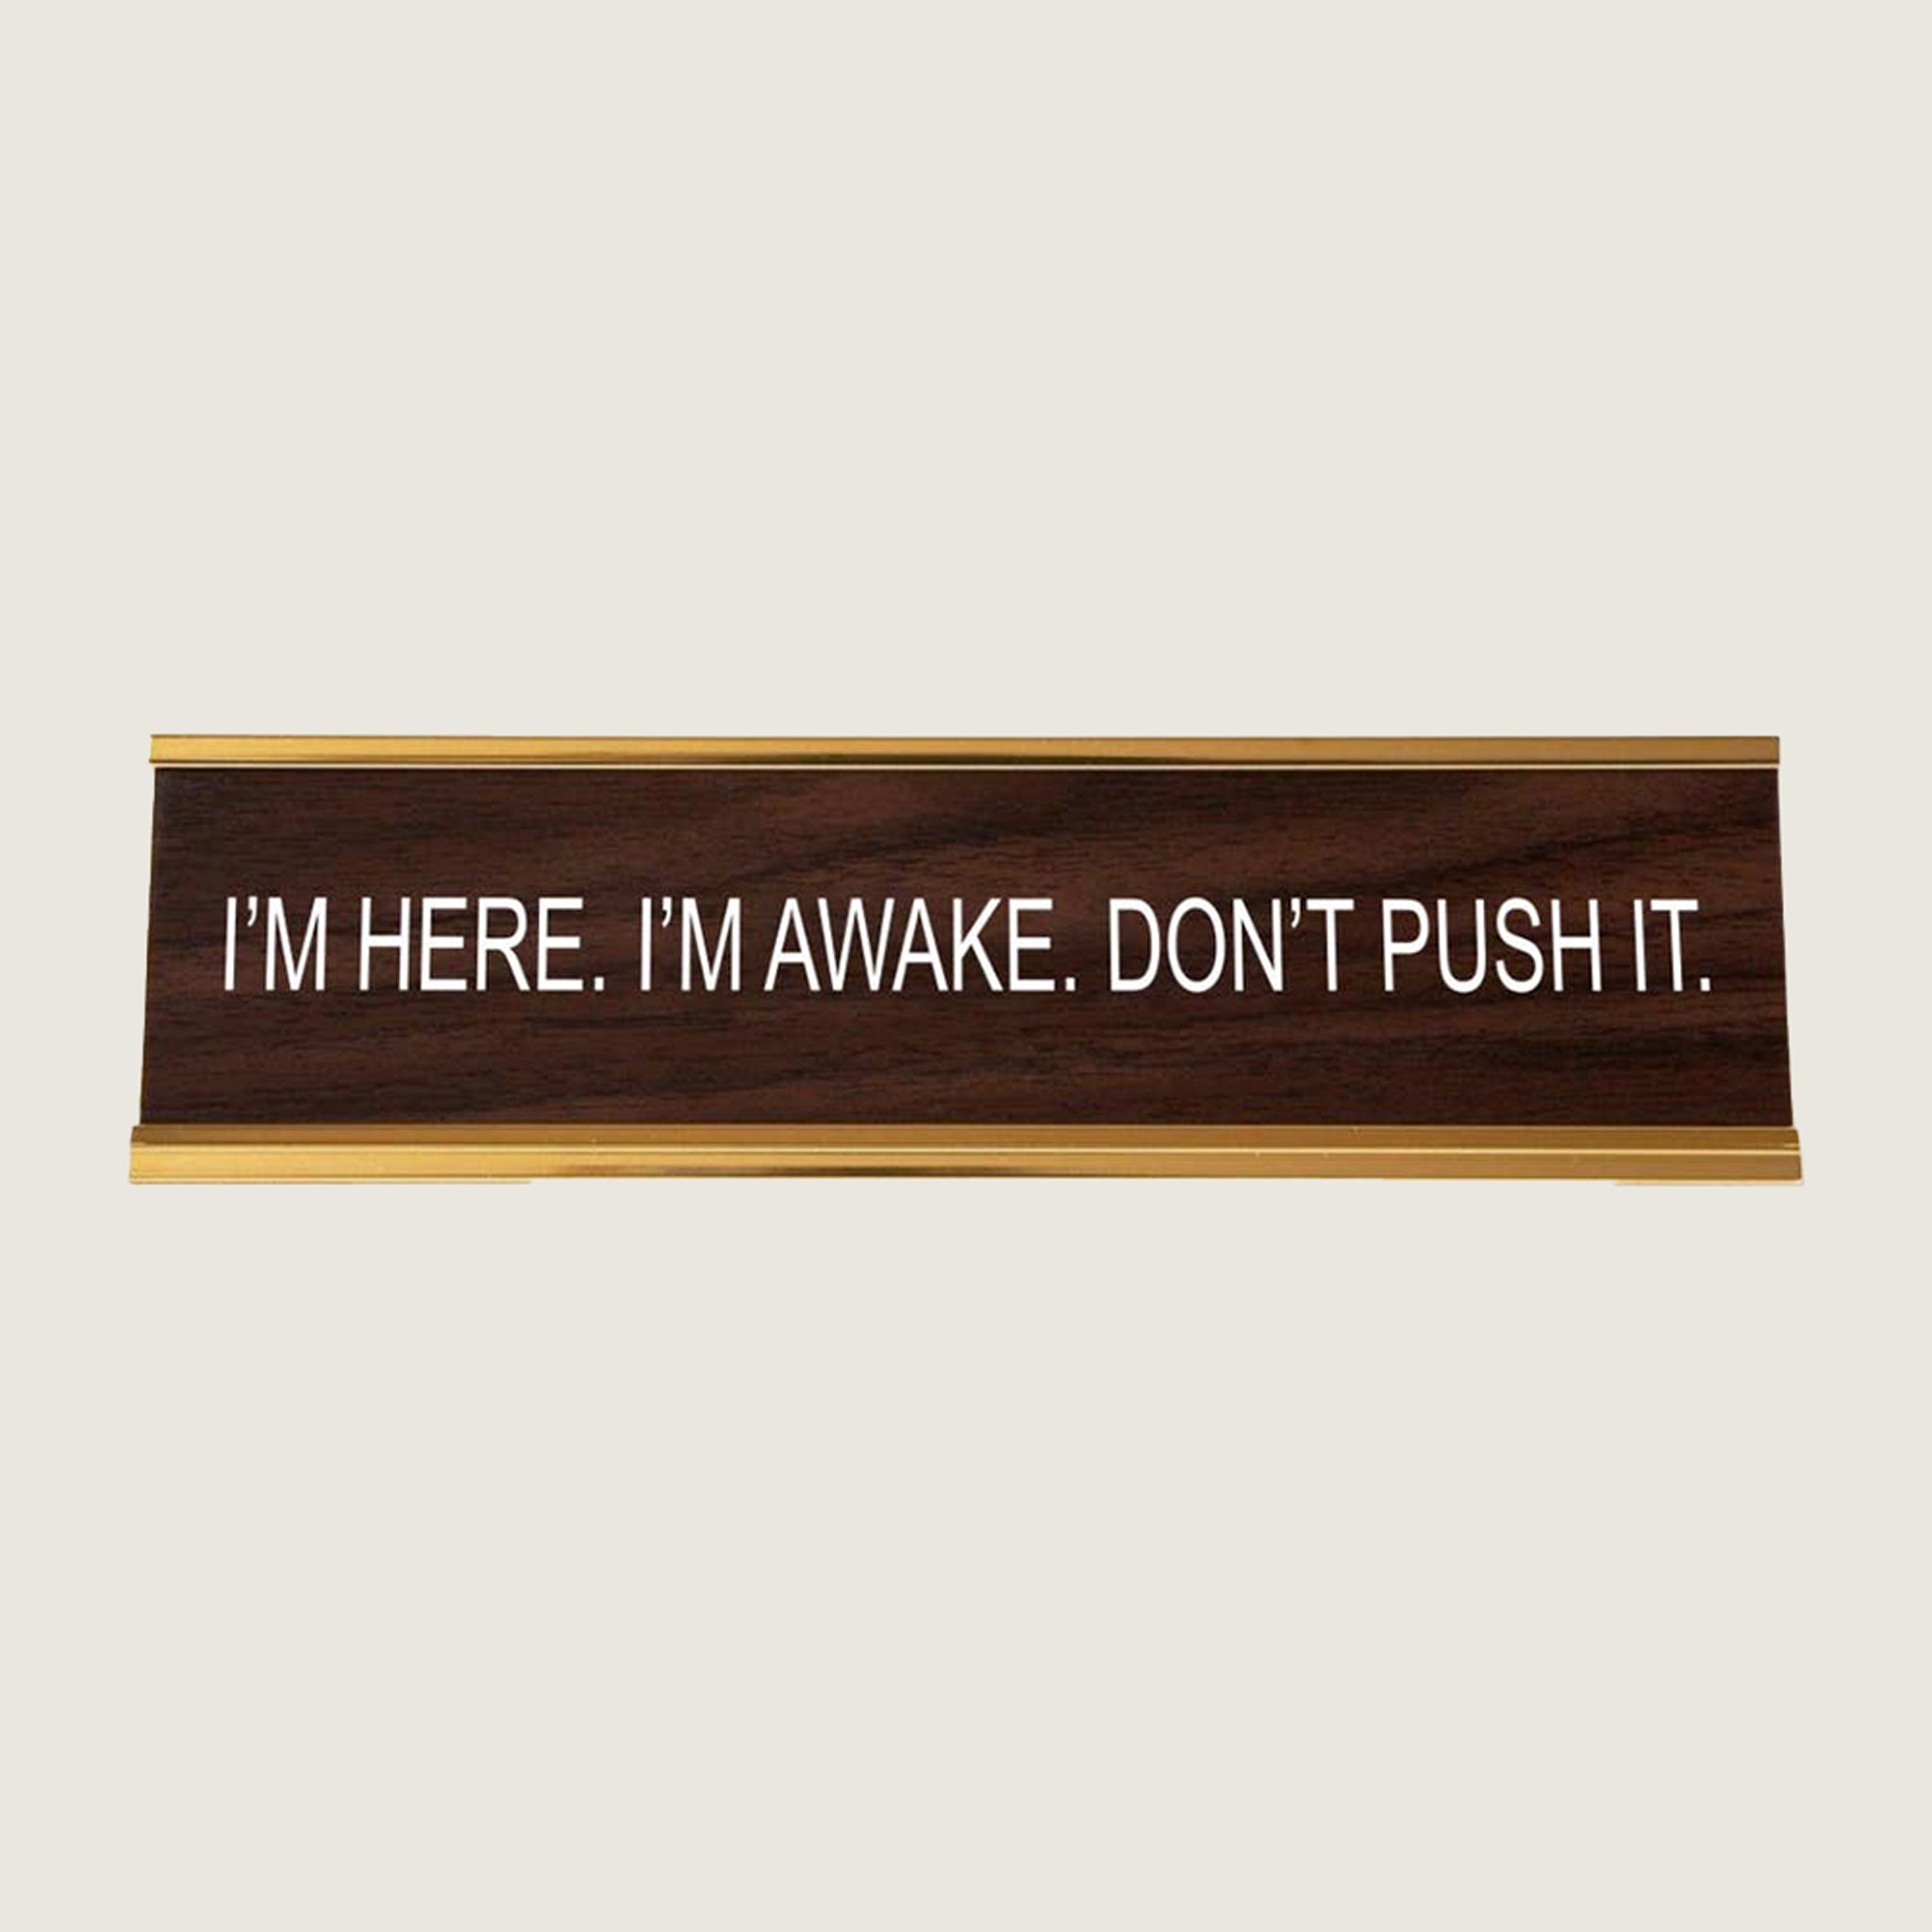 I'm Here I'm Awake Don't Push It - Blackbird General Store